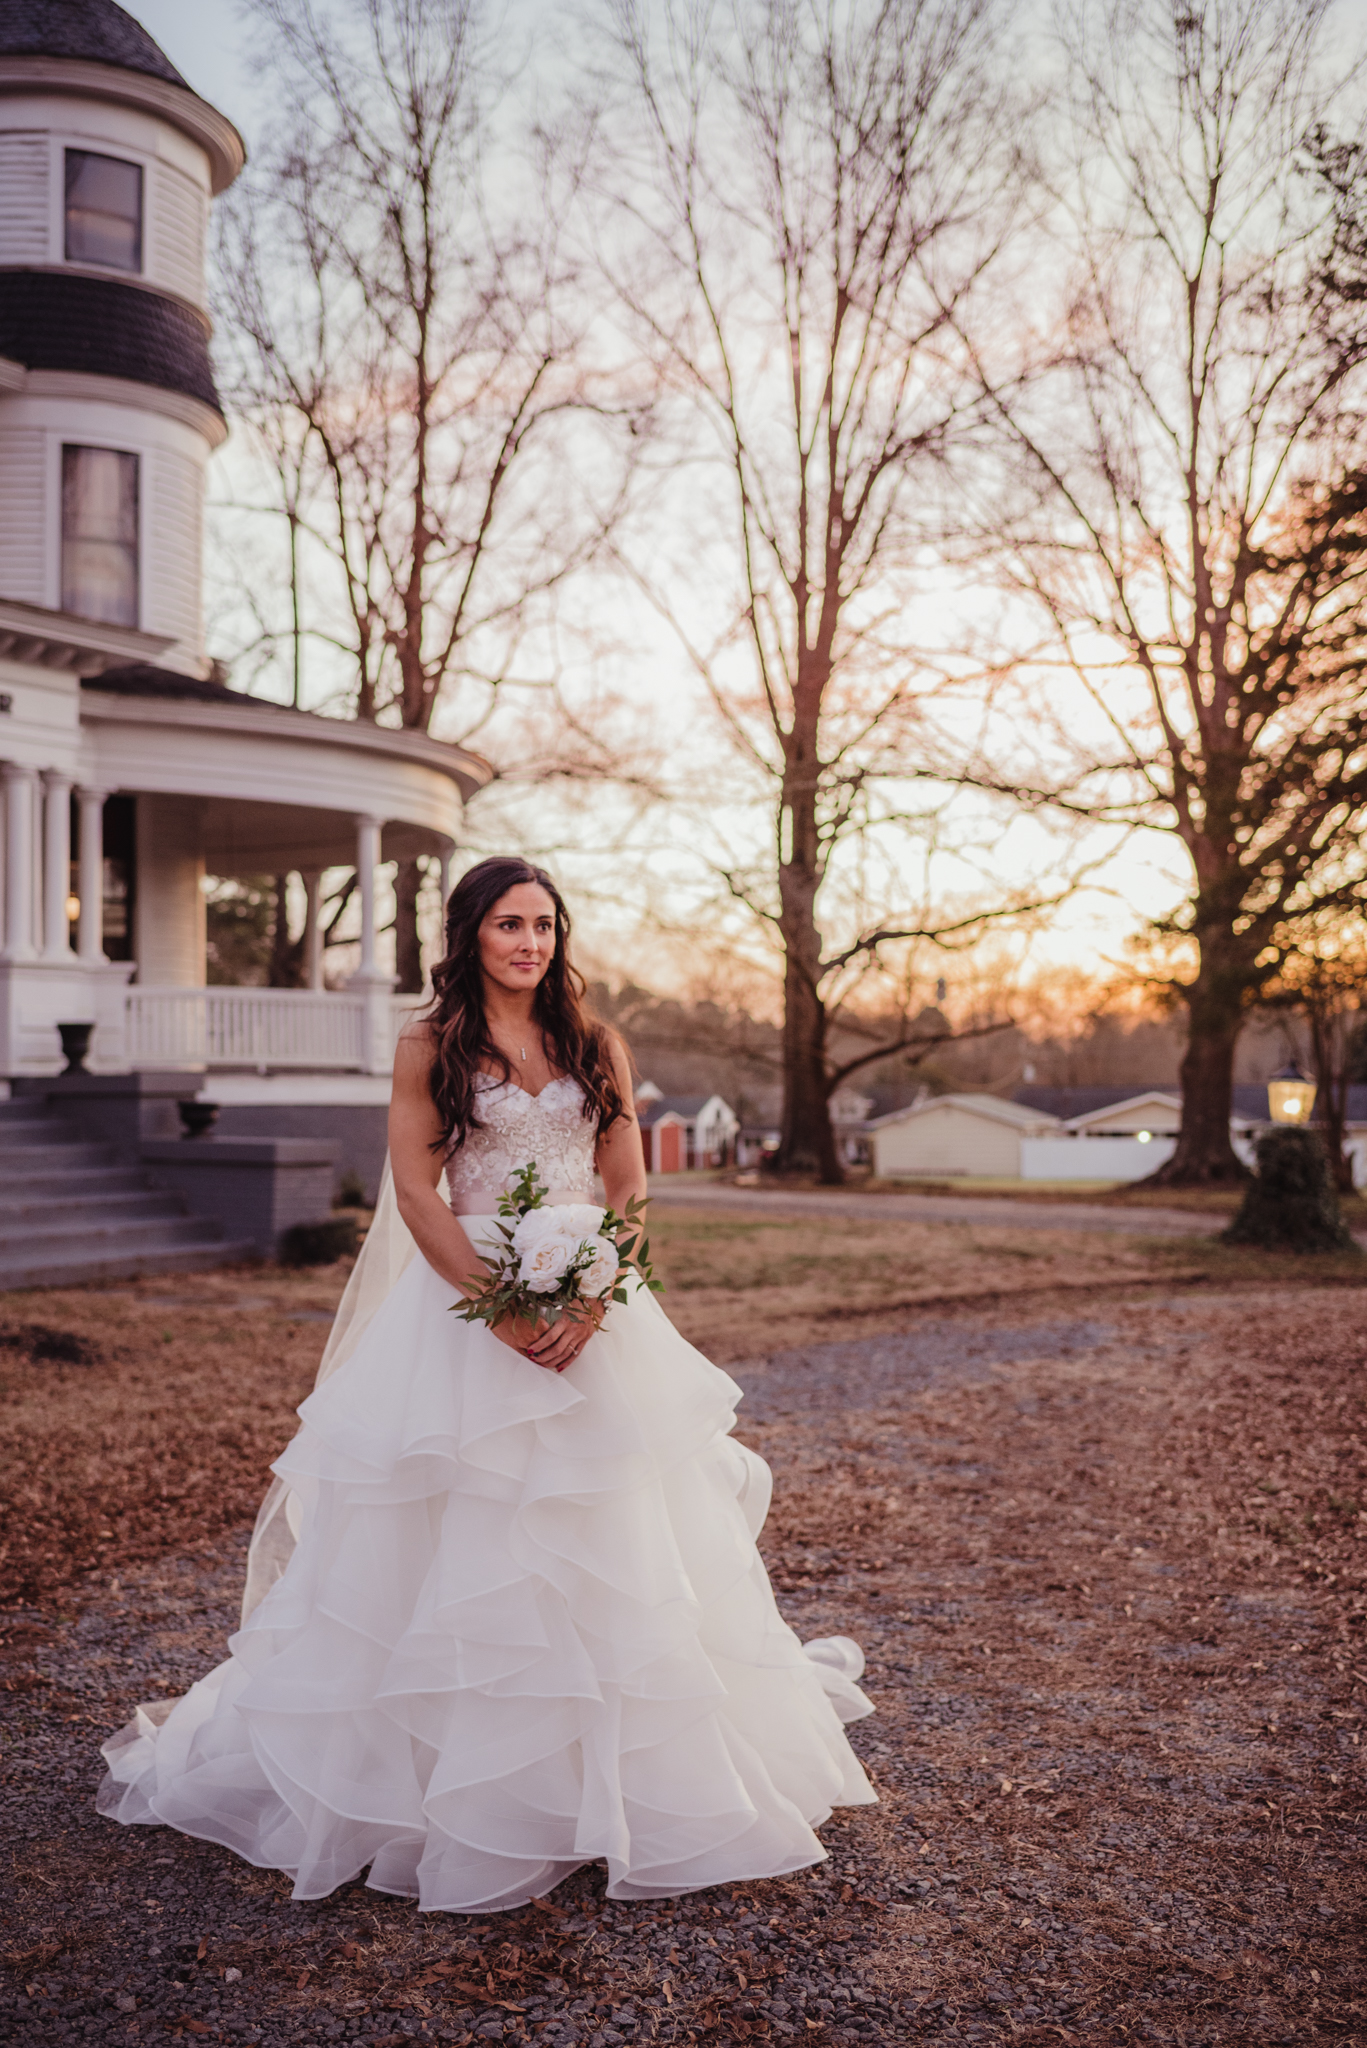 Raleigh-wedding-photographer-bride-portraits-sunset-mason-street-manor-rose-trail-images.jpg